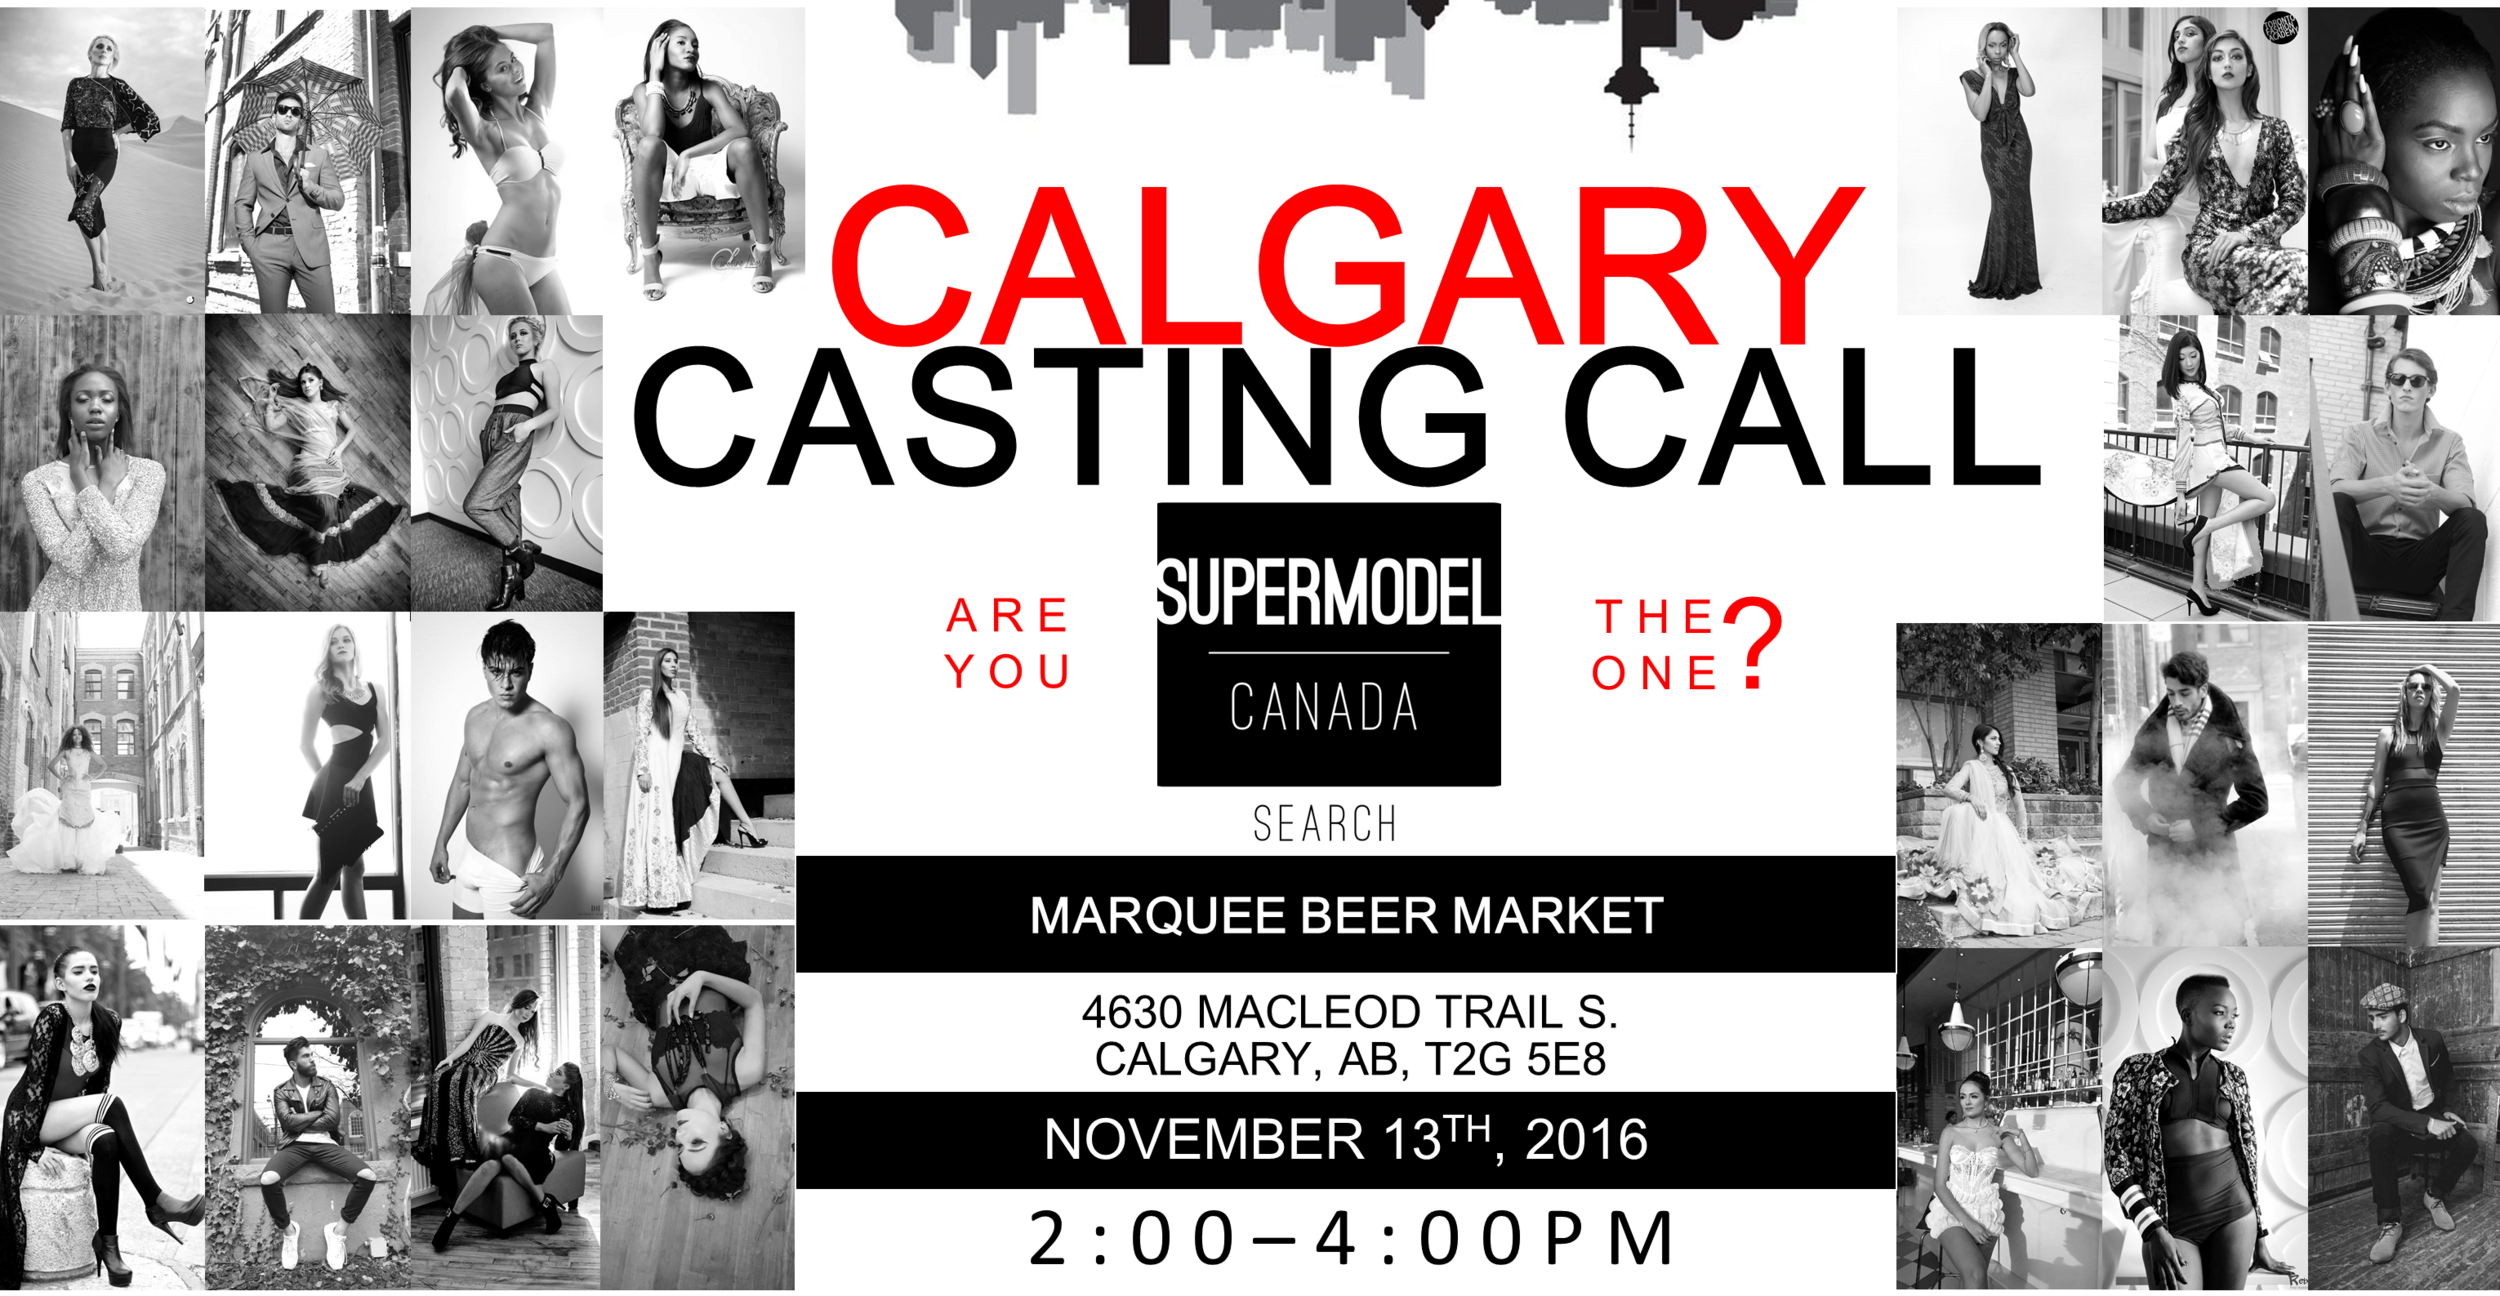 """CANADA WIDE SEARCH started in Toronto then Montreal now CALGARY  FEMALE: Age: 16years-29years  Height: 5'7""""+  MALE: Age: 16years-32years Height: 5'9""""+  Location: Marquee Beer Market 4630 Macleod Trail S. Calgary, AB, T2G 5E8  Time: 2:00pm - 4:00pm  APPLY NOW!"""